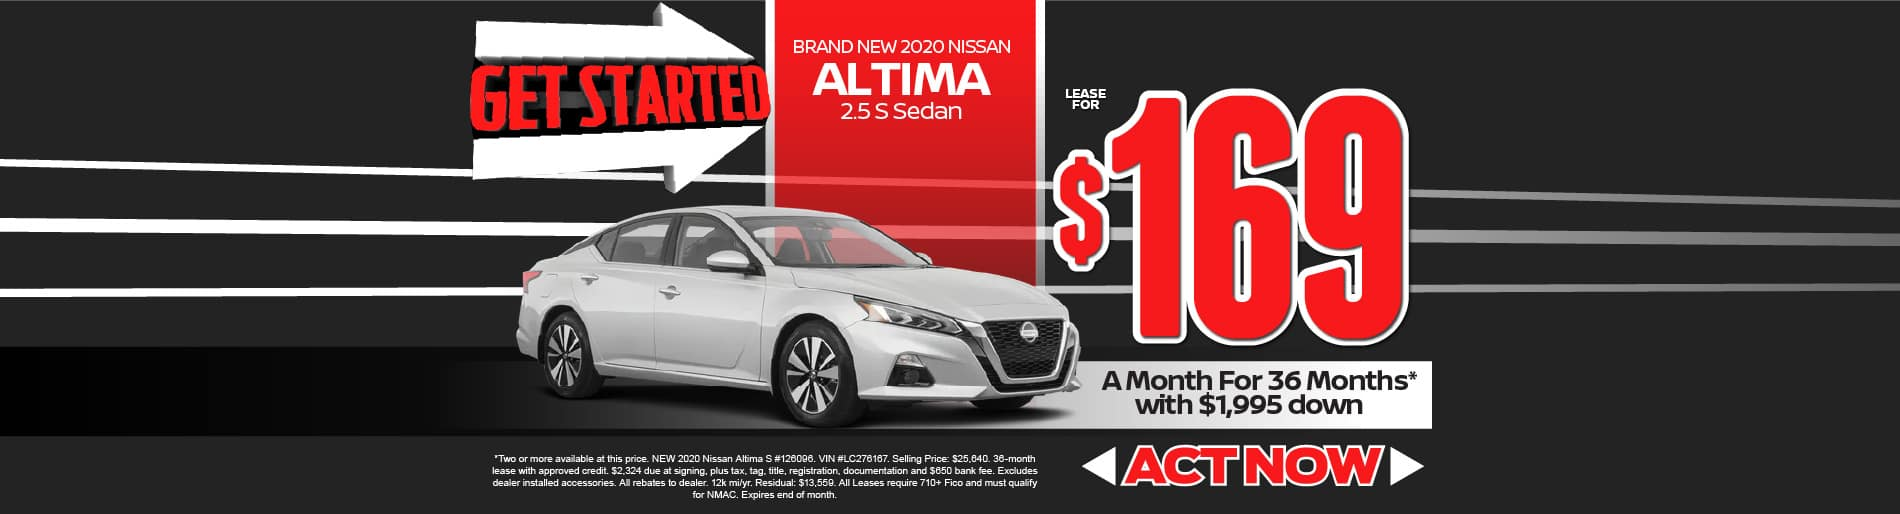 2020 Nissan Altima $169/mo - view inventory